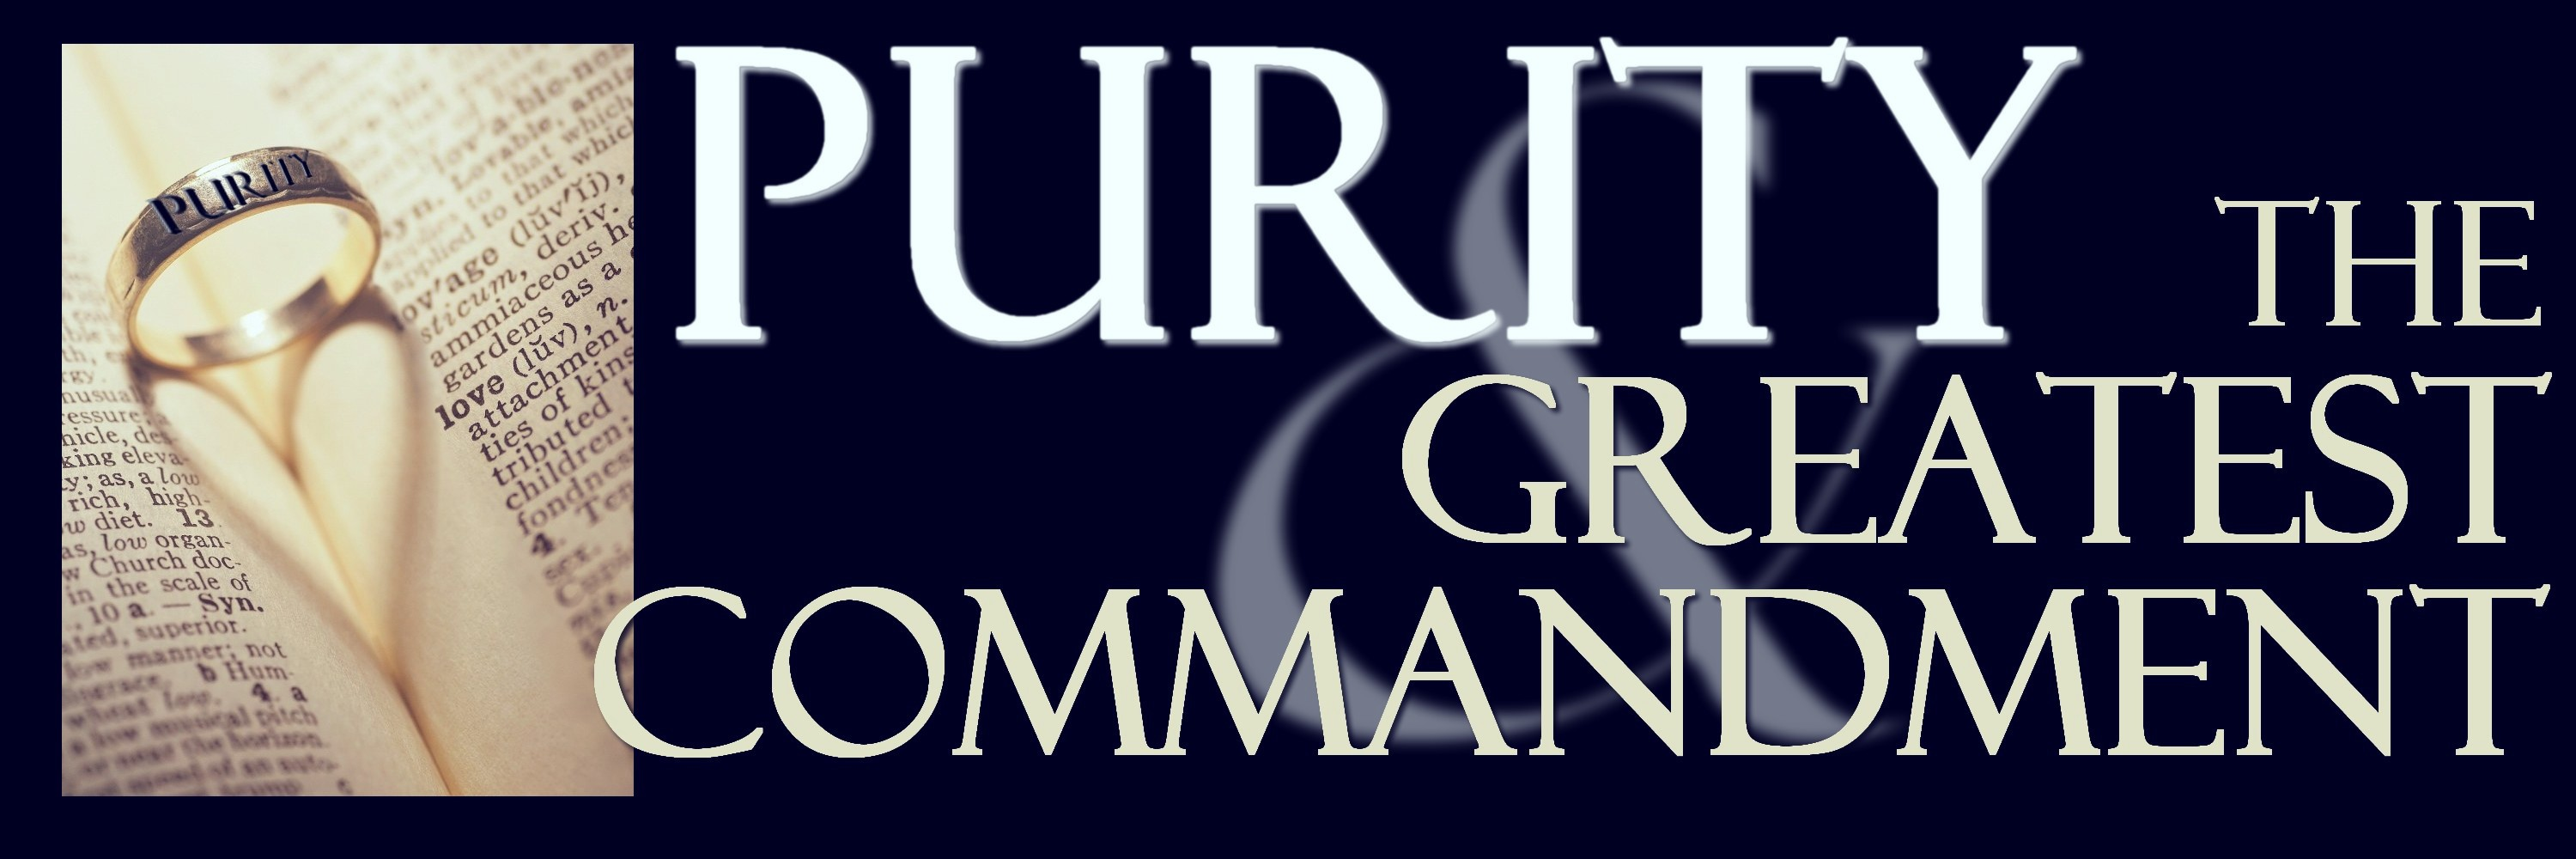 purity-and-the-greatest-commandment-2